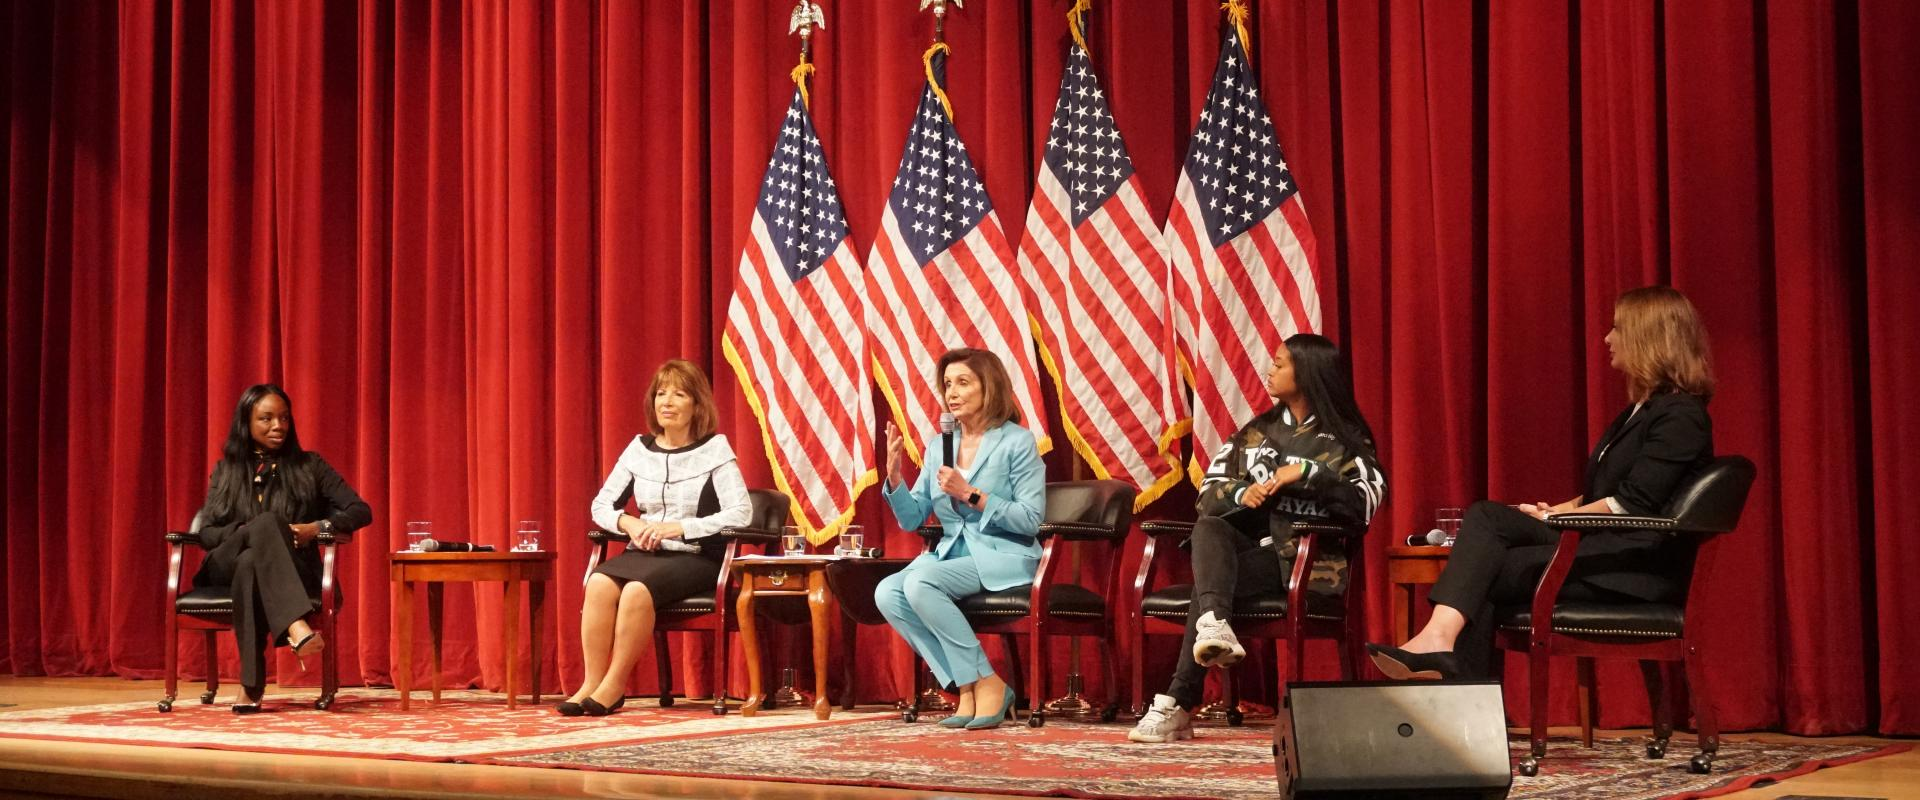 Congresswomen Nancy Pelosi and Jackie Speier hold a community town hall meeting on gun violence prevention and the For The People agenda at Abraham Lincoln High School. At the meeting they discussed the need for strong bipartisan, common sense gun violenc